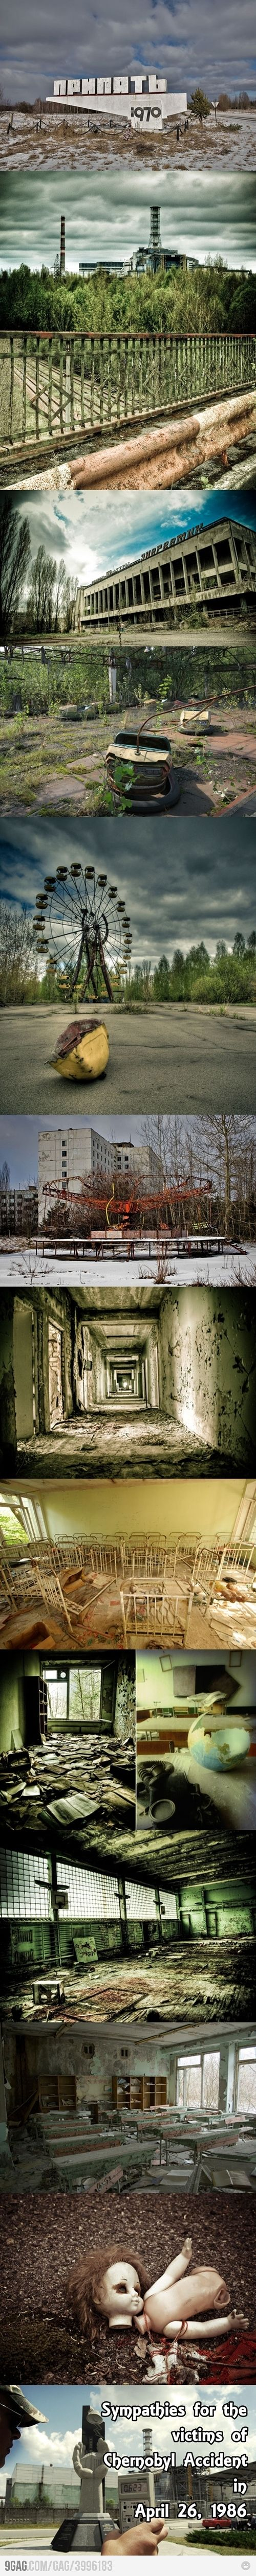 pretty cool pictures, makes me want to see the movie even if i'm terrified of horror movies.